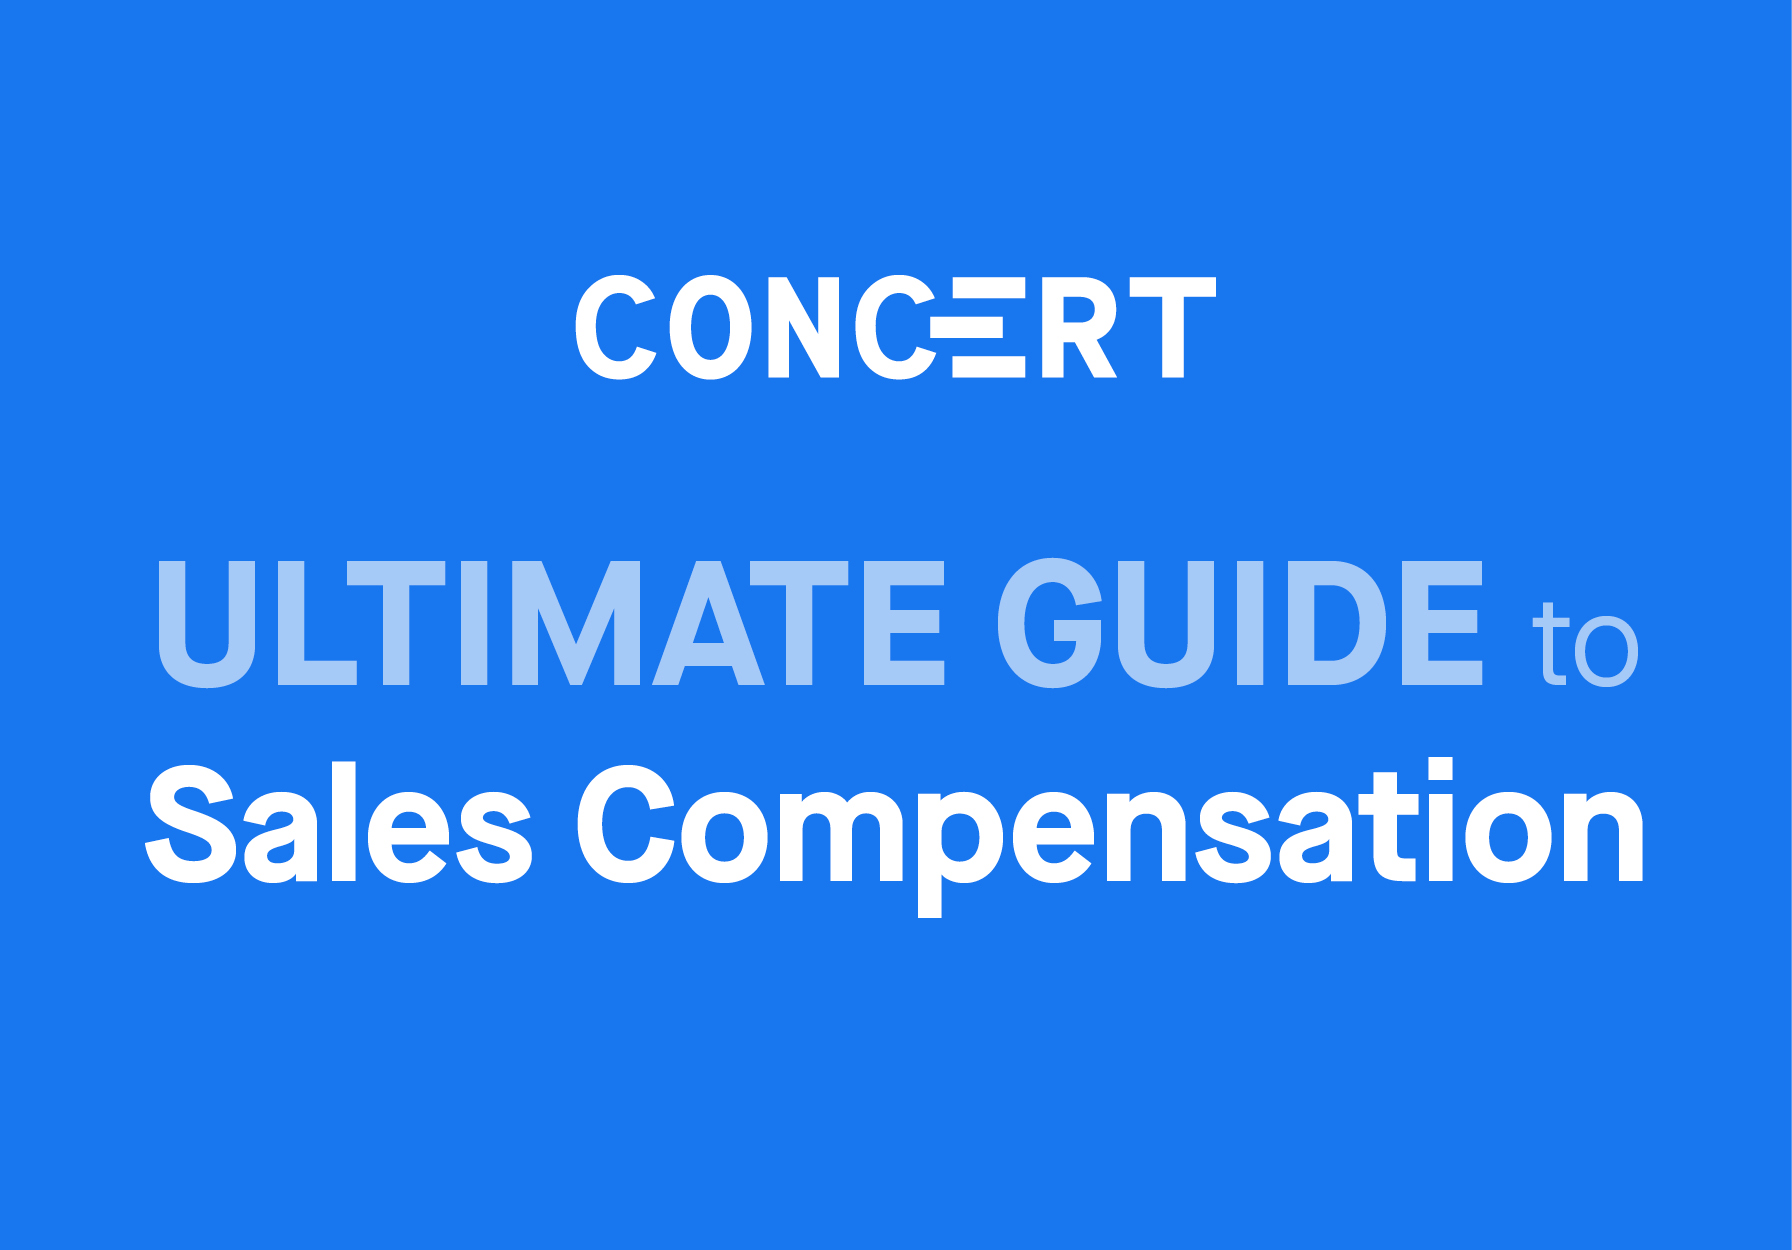 Concert's Ultimate Guide to Sales Compensation